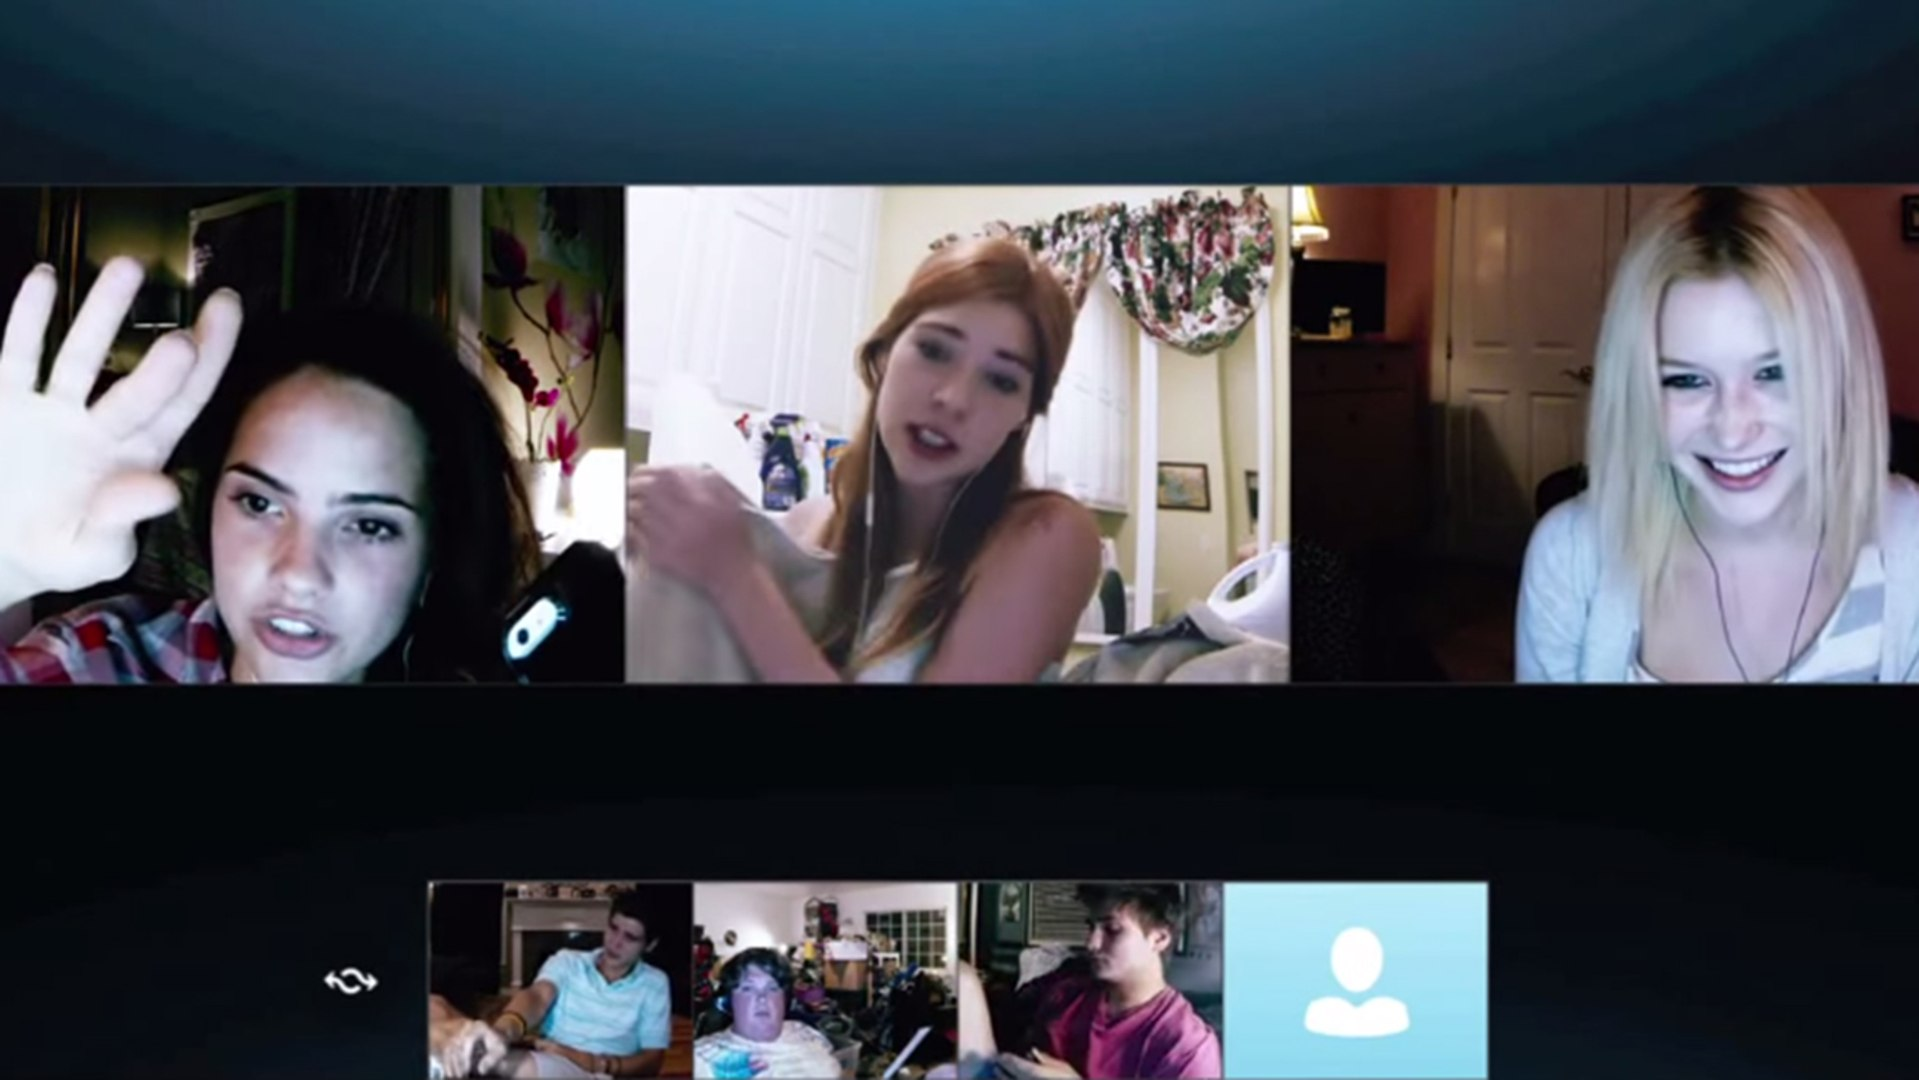 Unfriended trailer (2015) full movie, Unfriended behind the scenes, Unfriended full movie 2015 in en